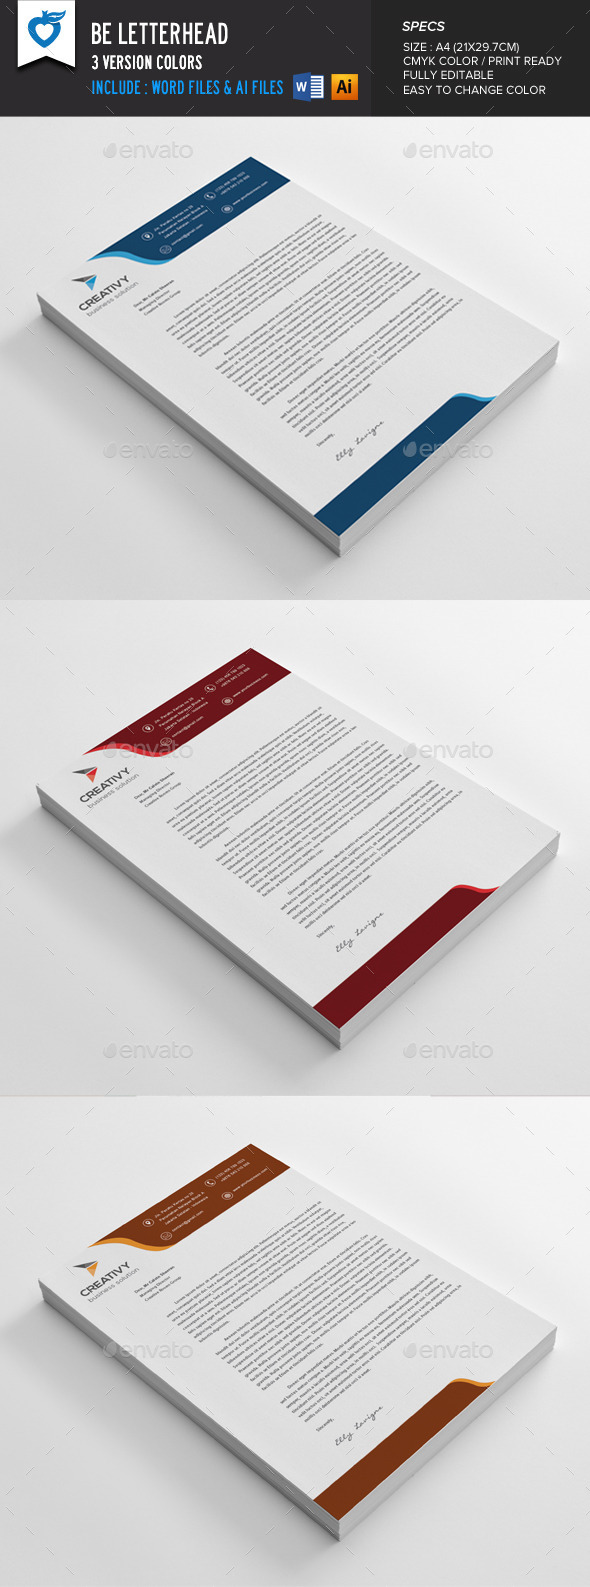 12 free letterhead templates in psd ms word and pdf format letterhead template accmission Images